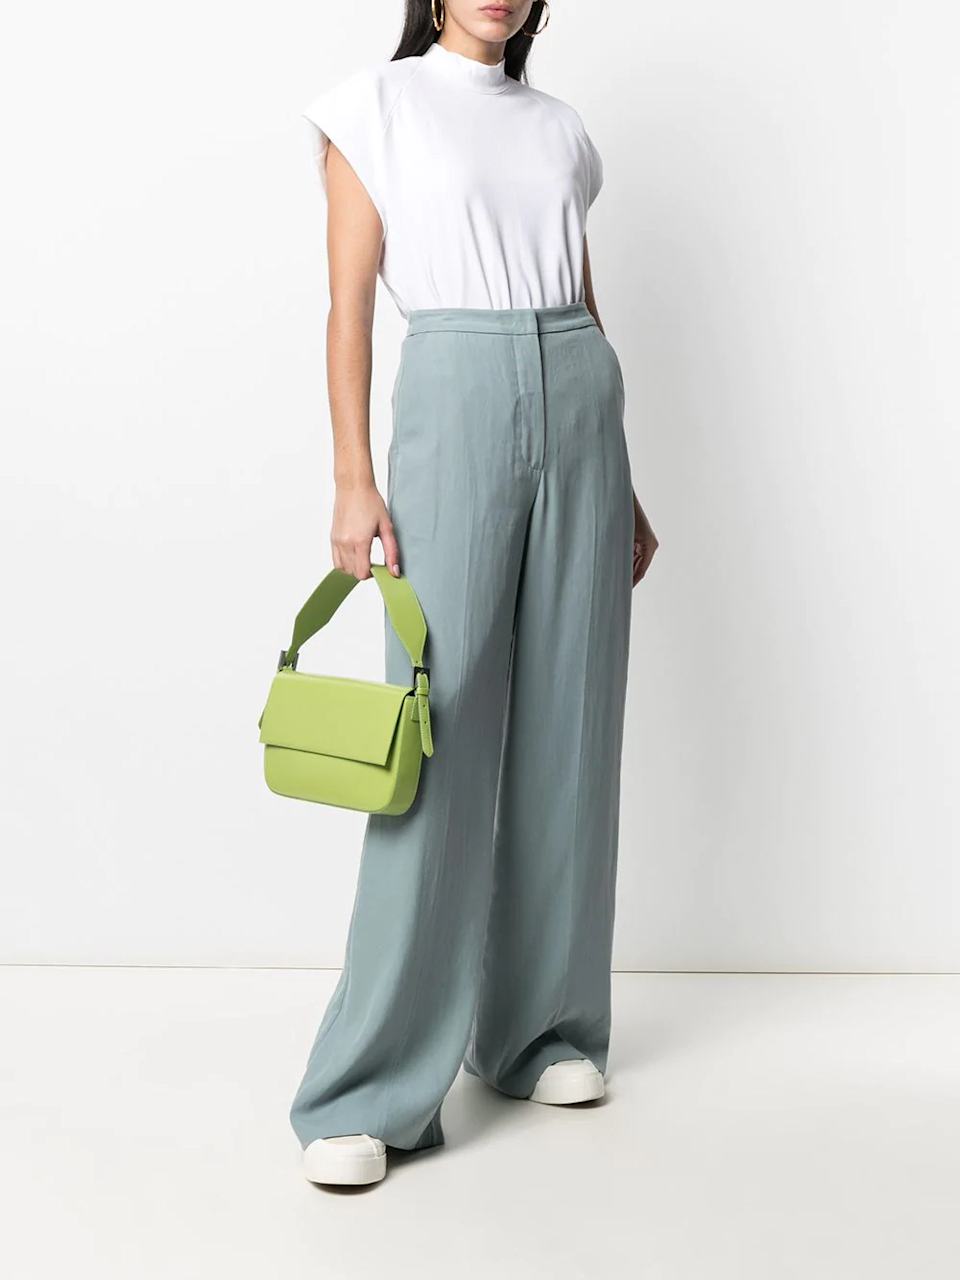 """<h2>Wide-Leg Pants</h2><br>""""Wardrobe foundations are making more sense than ever before. Within the framework of simplicity, proportion play is a go-to for injecting interest.""""<br><br>-Celenie Seidel, Senior Womenswear Editor at FARFETCH<br><br><strong>Remain</strong> Angelina Woven Wide-Leg Trousers, $, available at <a href=""""https://go.skimresources.com/?id=30283X879131&url=https%3A%2F%2Fwww.farfetch.com%2Fshopping%2Fwomen%2Fremain-angelina-woven-wide-leg-trousers-item-16219800.aspx"""" rel=""""nofollow noopener"""" target=""""_blank"""" data-ylk=""""slk:Farfetch"""" class=""""link rapid-noclick-resp"""">Farfetch</a>"""